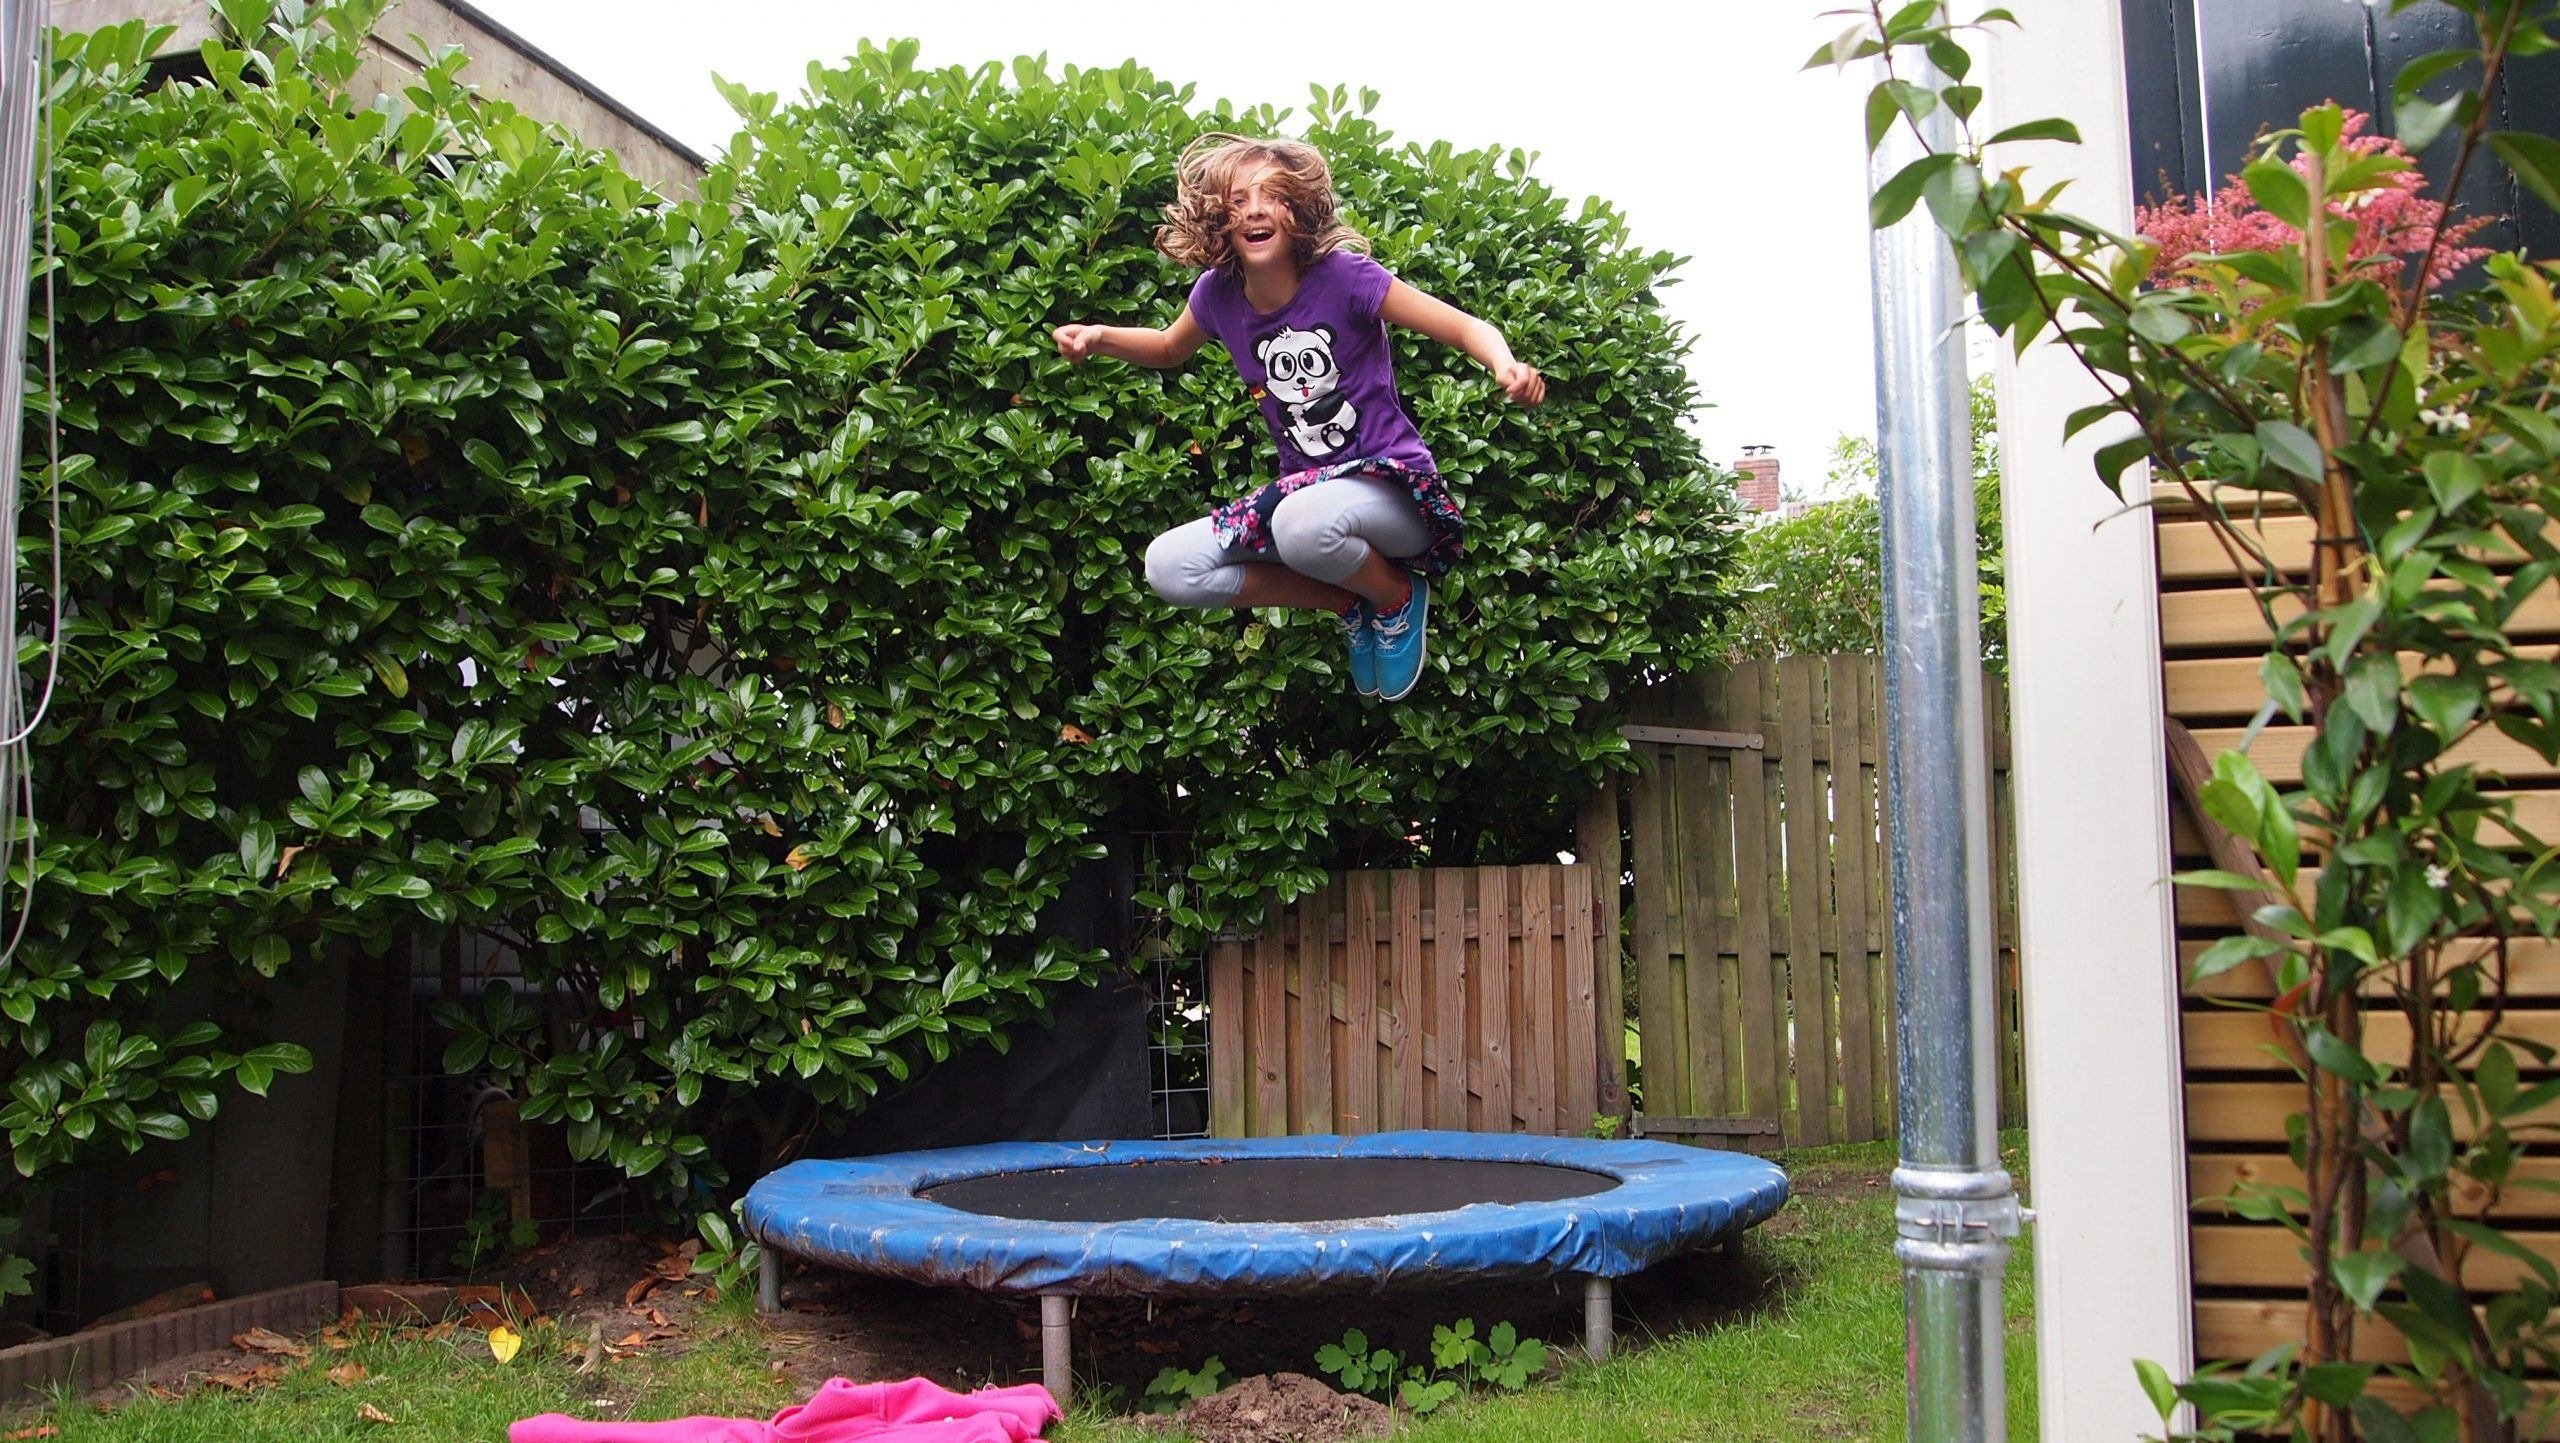 a girl bouncing happily in garden